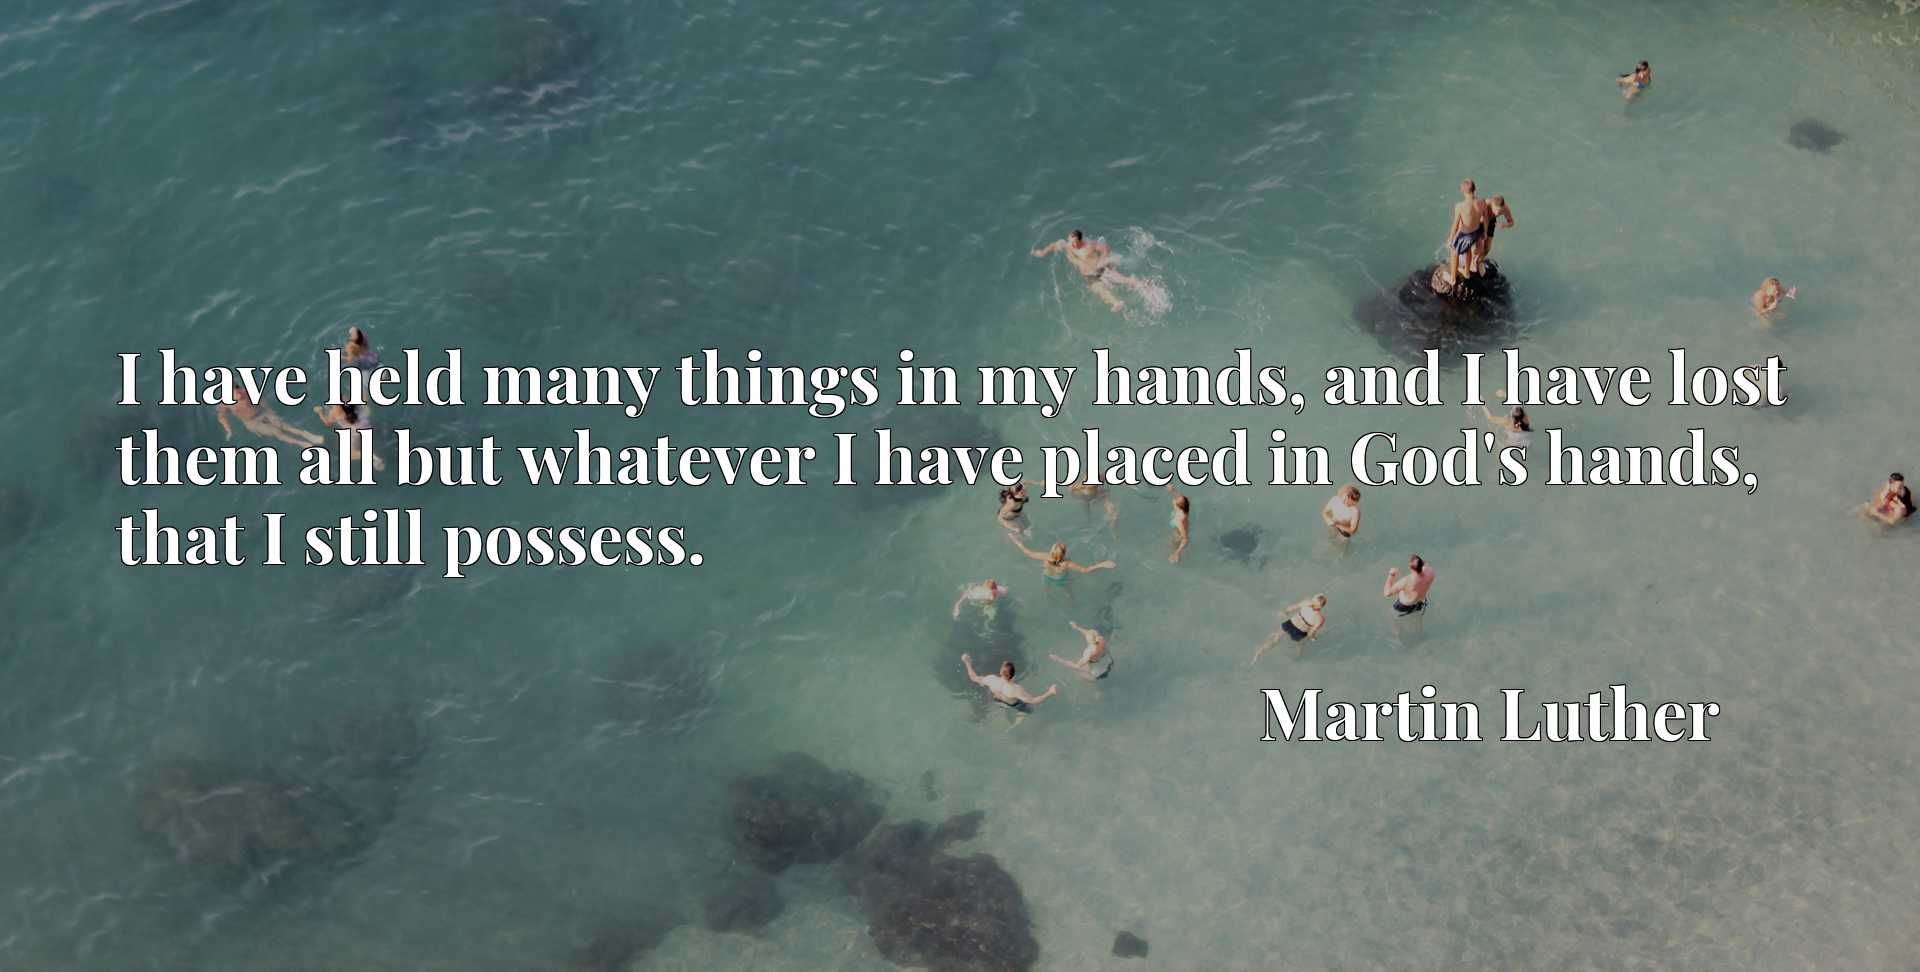 I have held many things in my hands, and I have lost them all but whatever I have placed in God's hands, that I still possess.